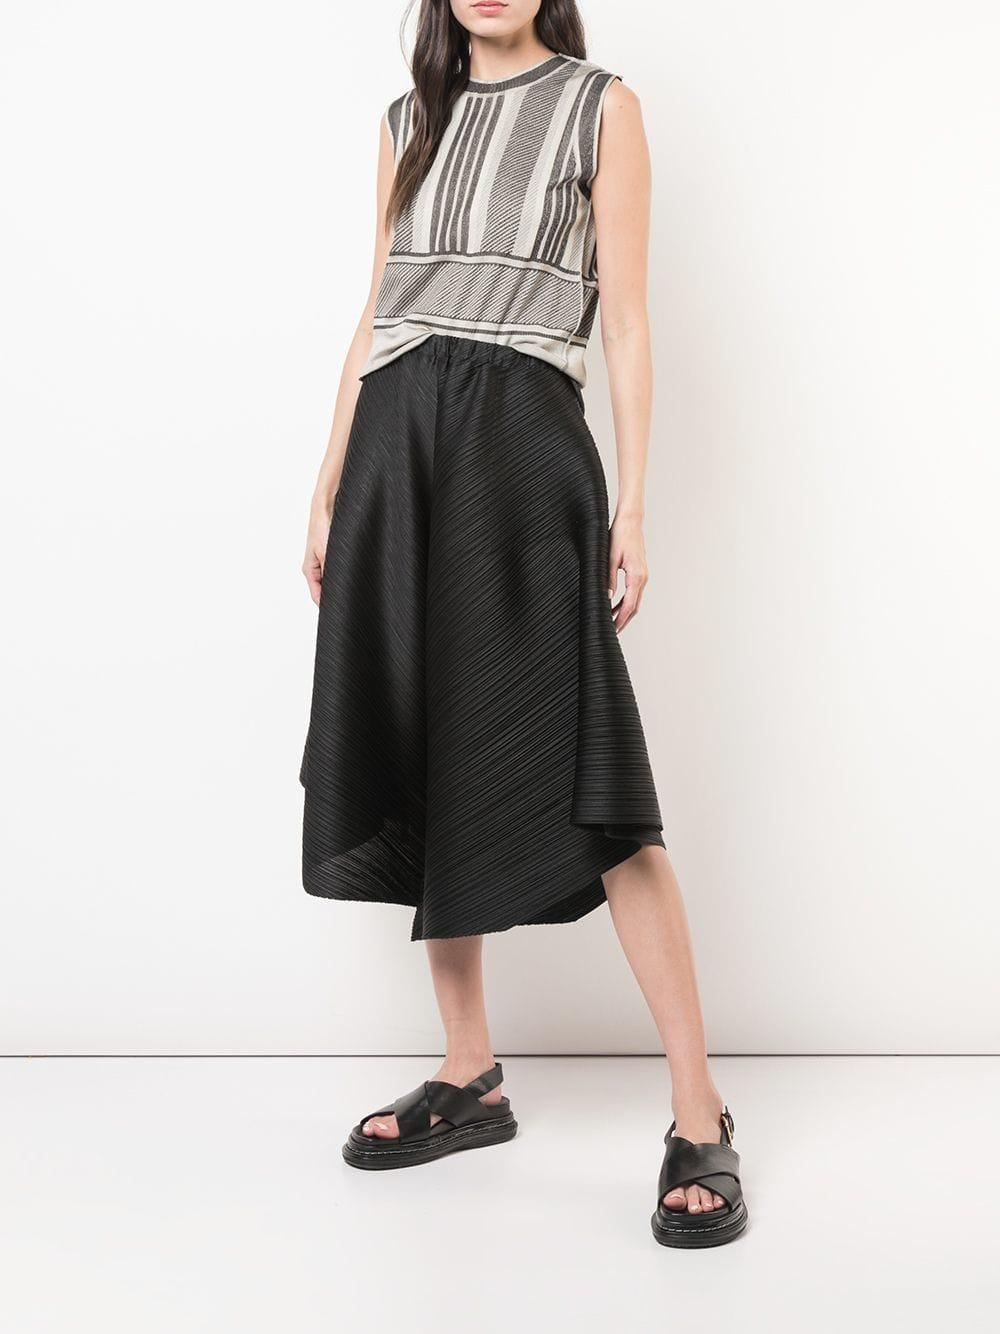 860ce85006780 Pleats Please Issey Miyake - Gray Striped Sleeveless Top - Lyst. View  fullscreen